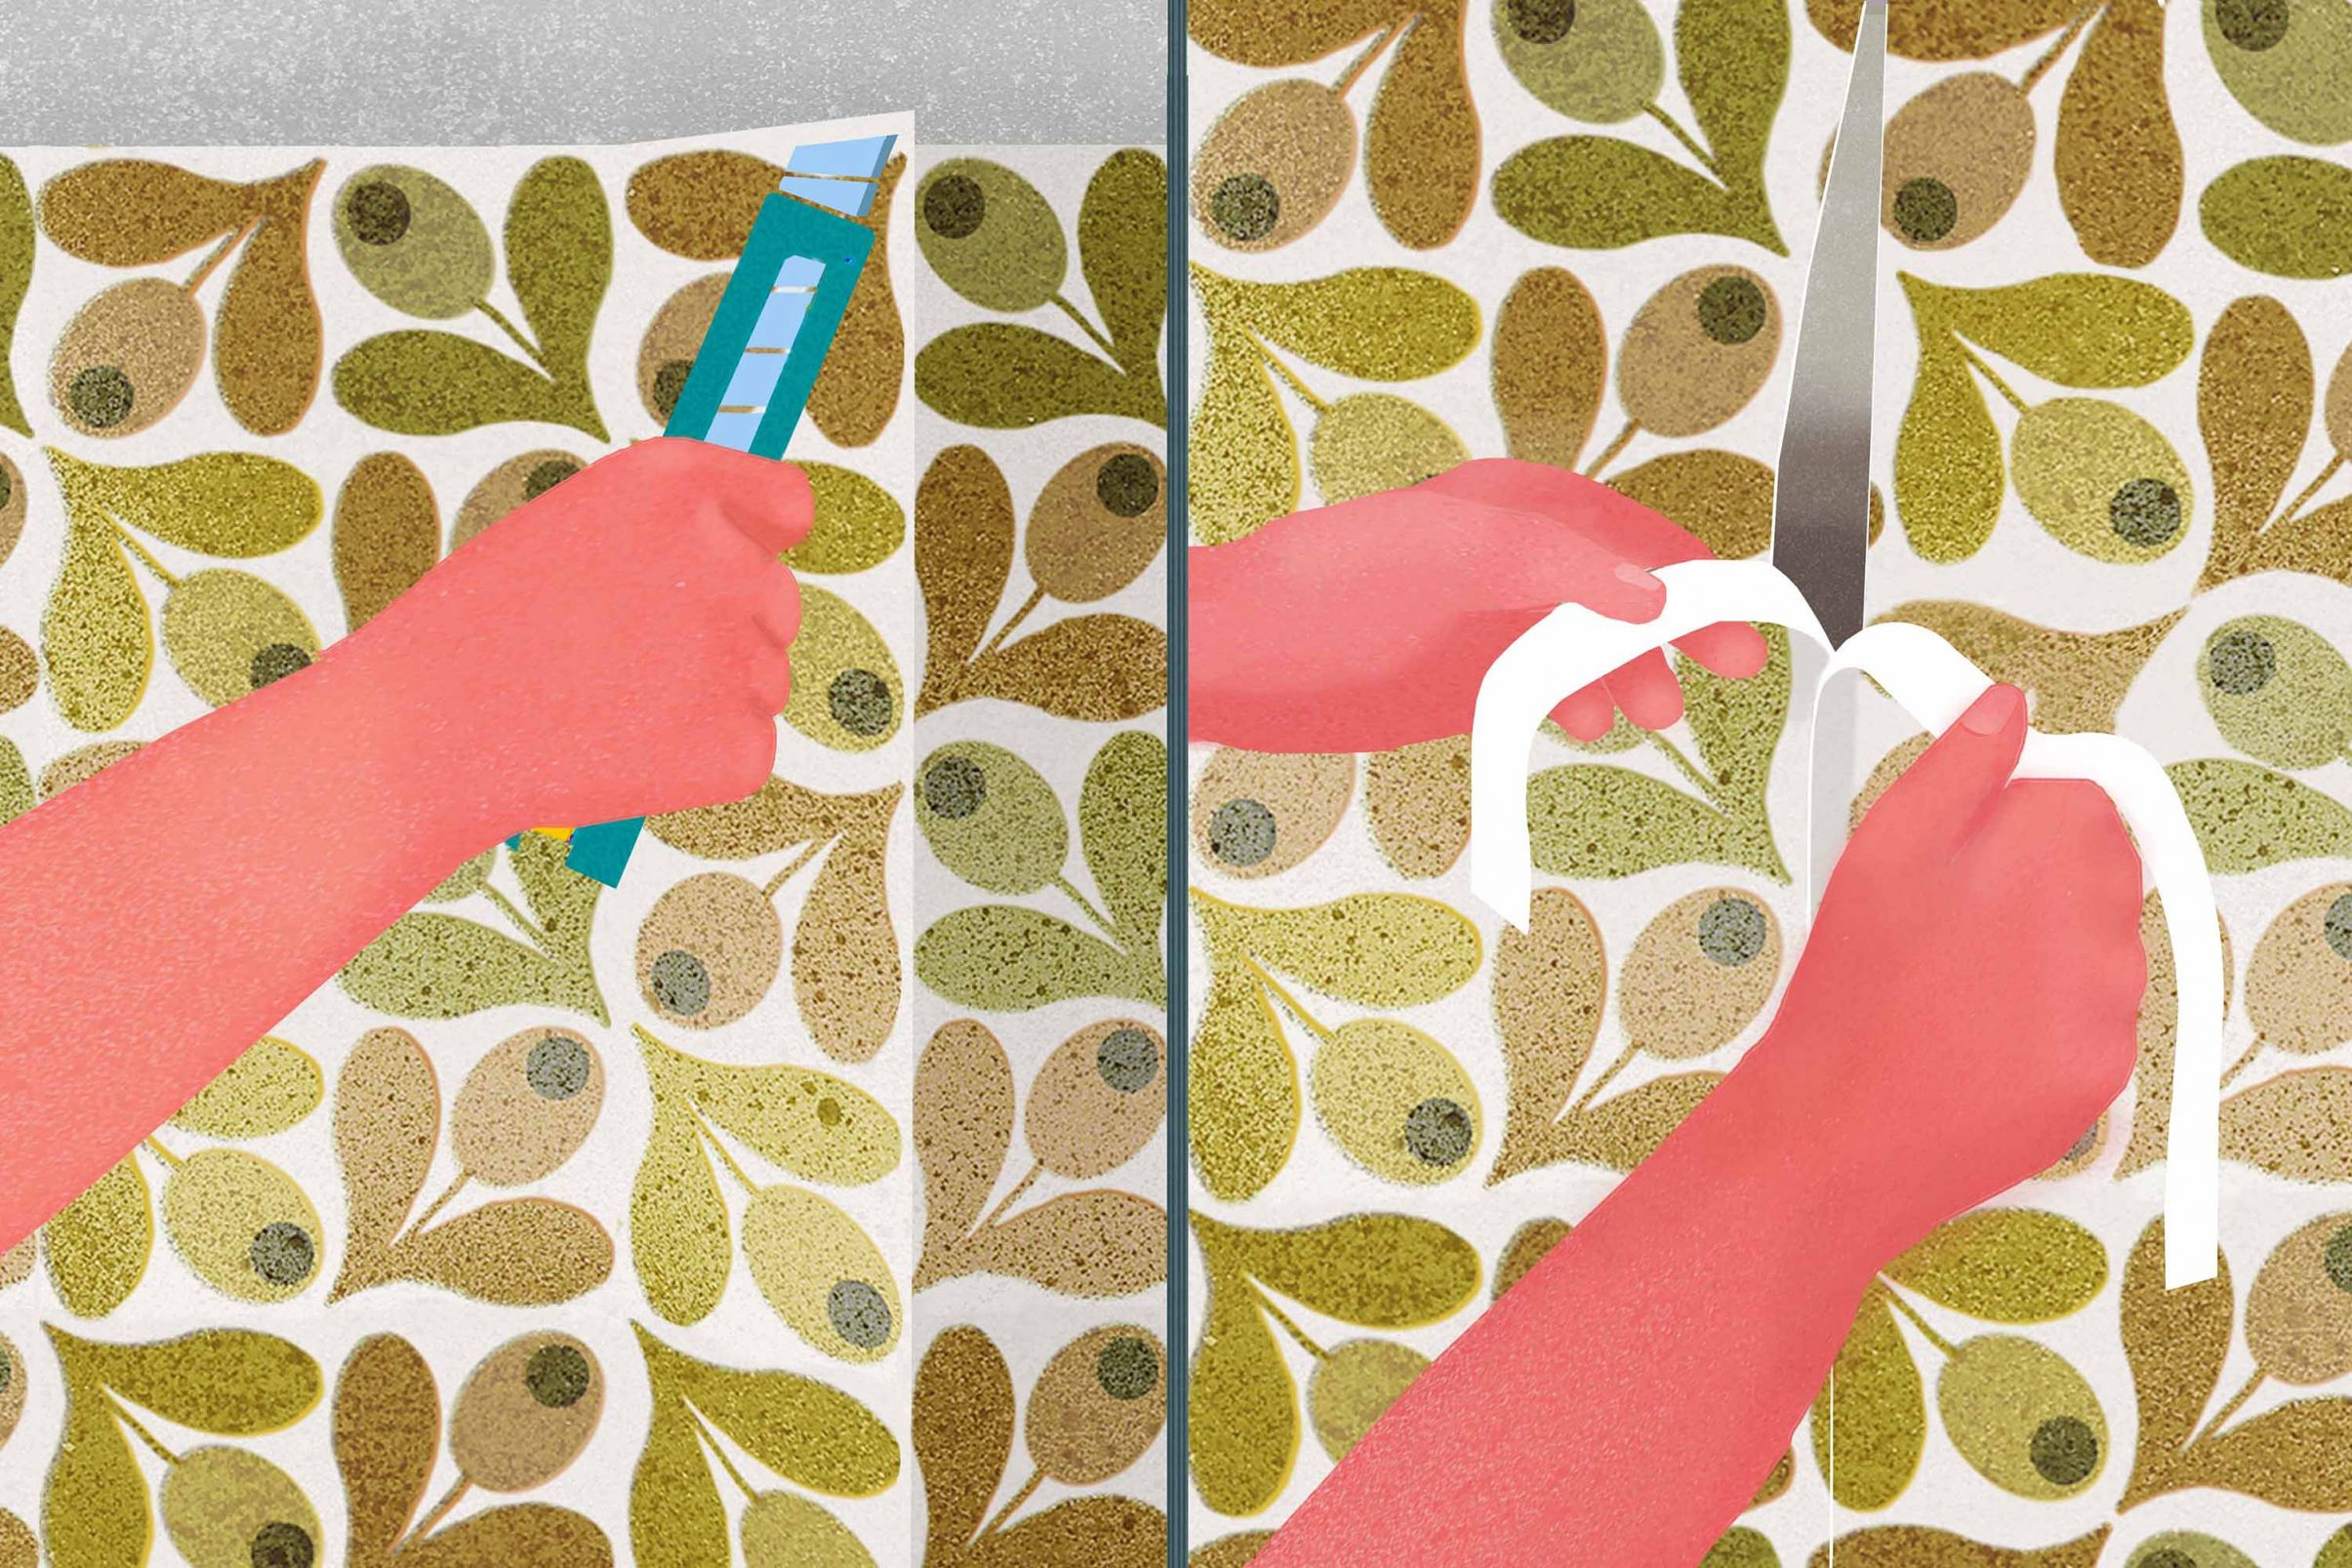 How-to-apply-wallpaper-around-windows-and-doors-Removing-the-overlap-with-a-double-seam-cut